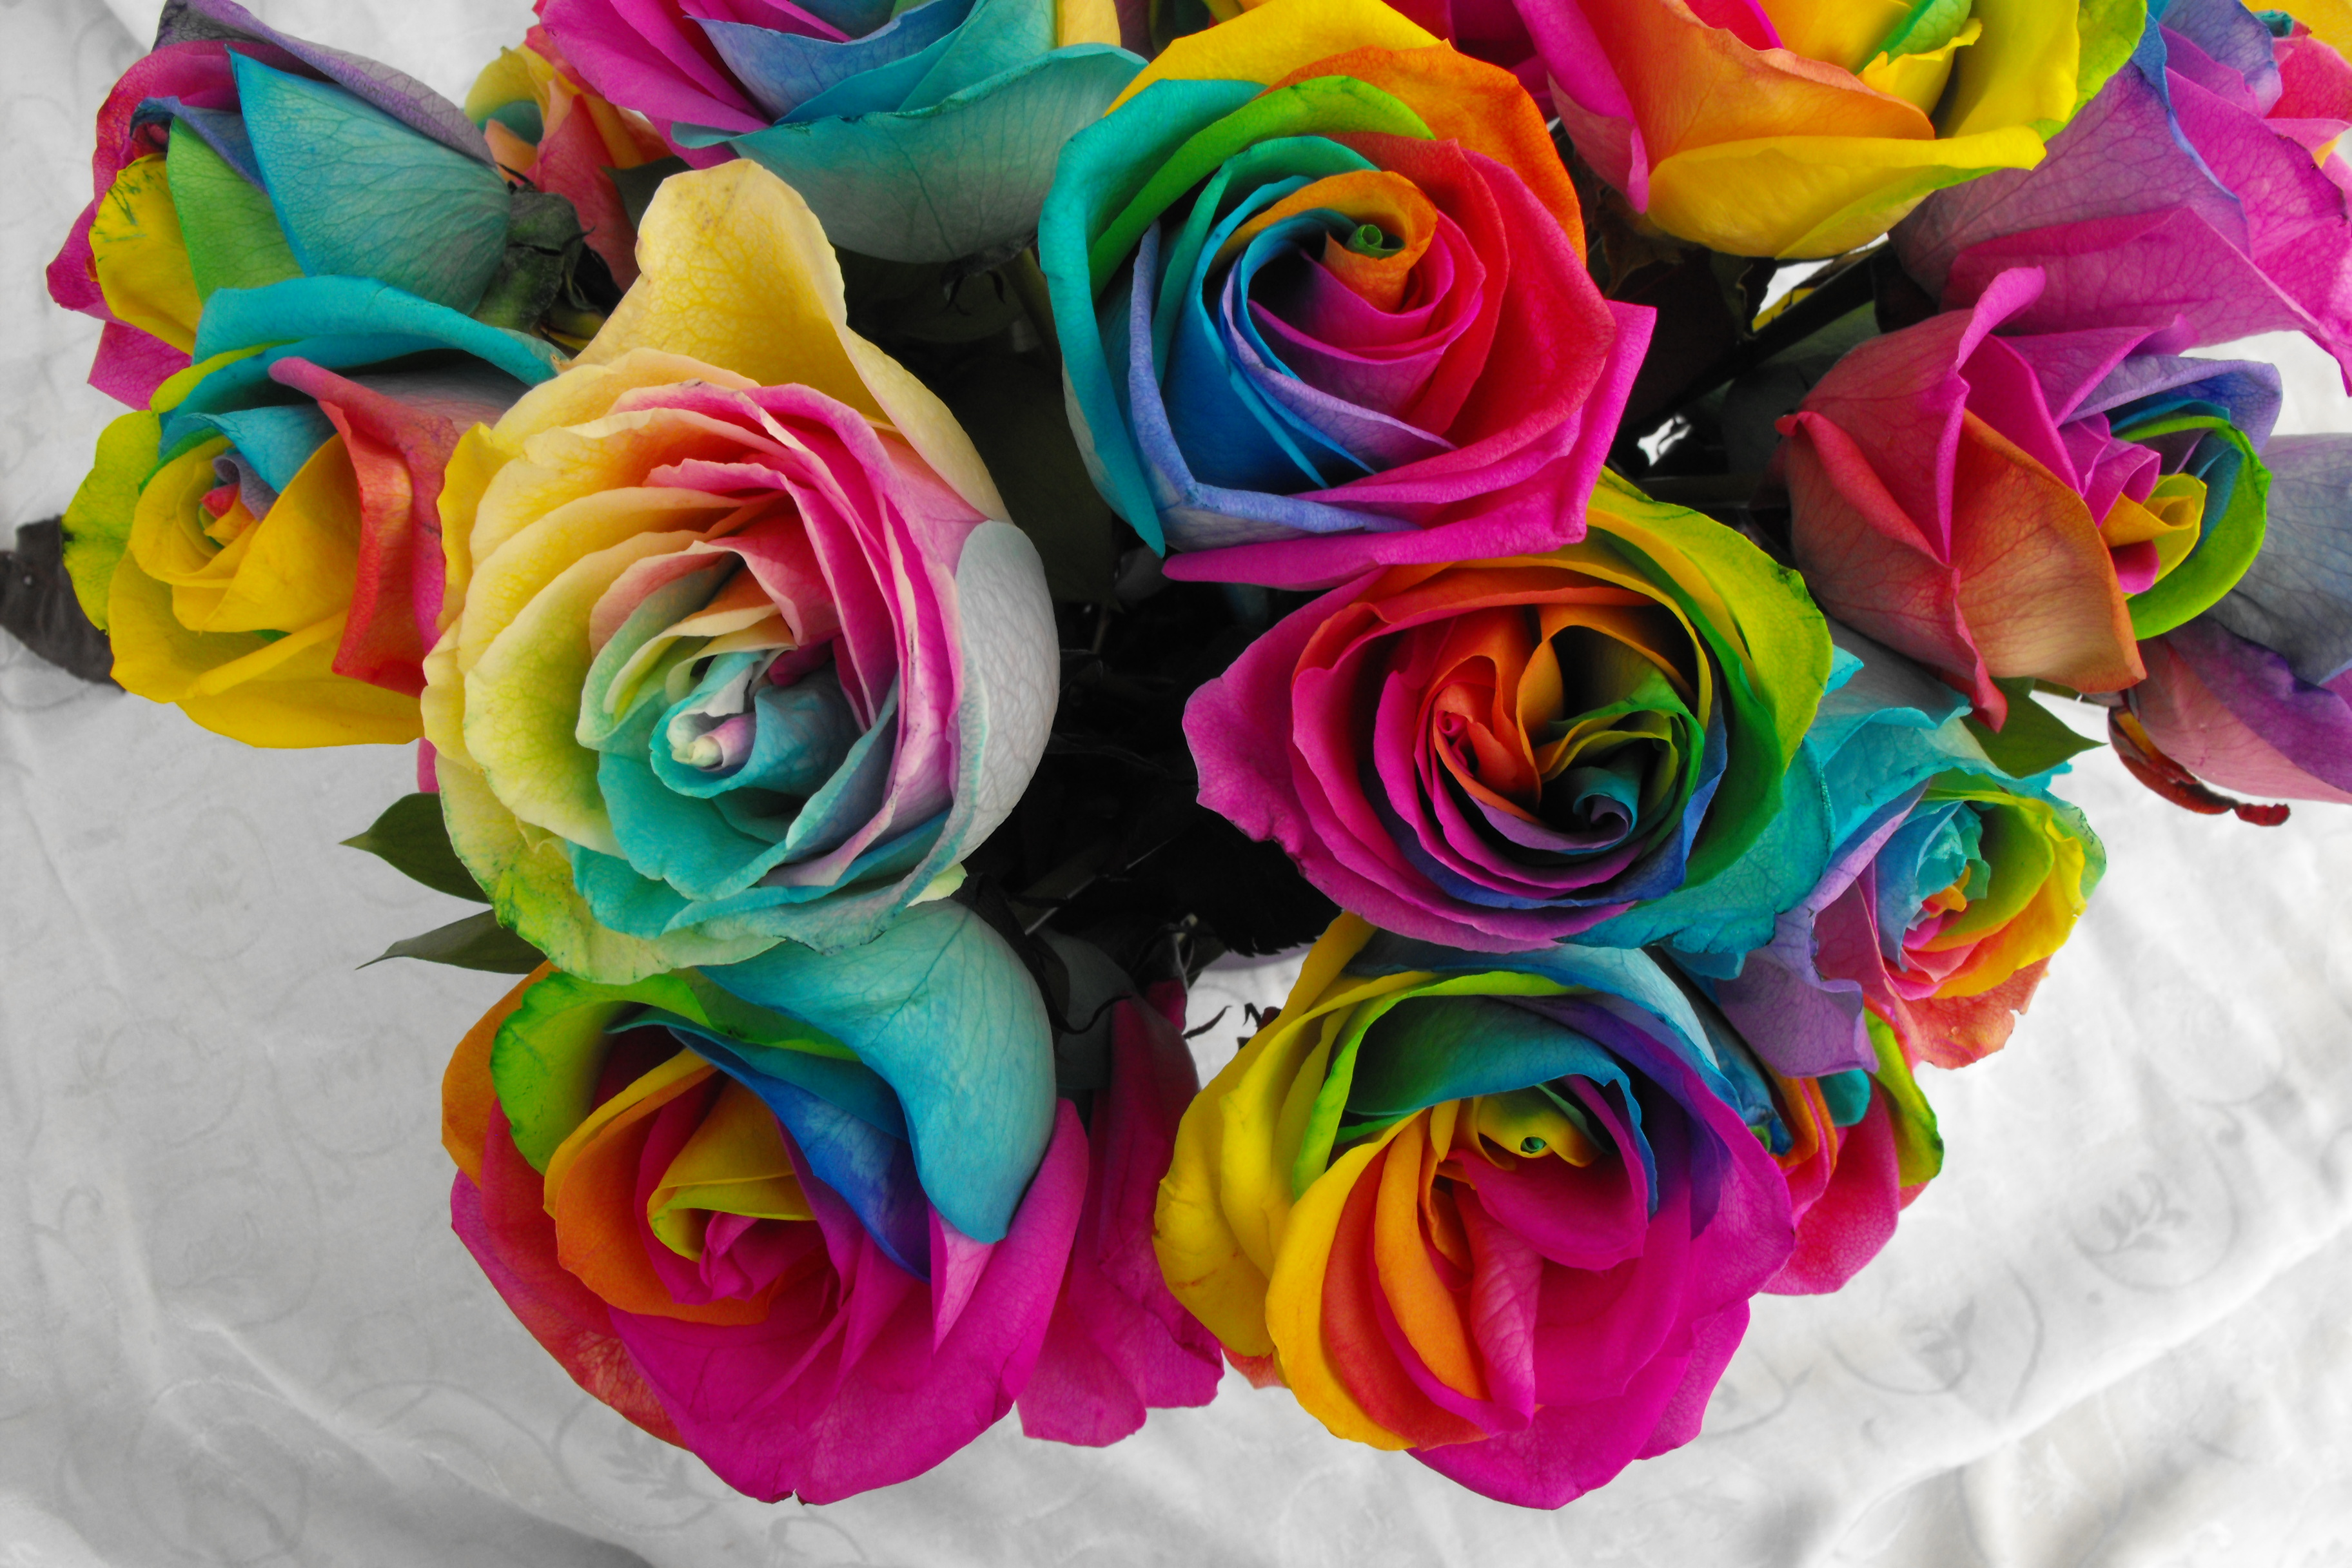 Rainbow roses background image gallery hoidj2 clipart for How much are rainbow roses